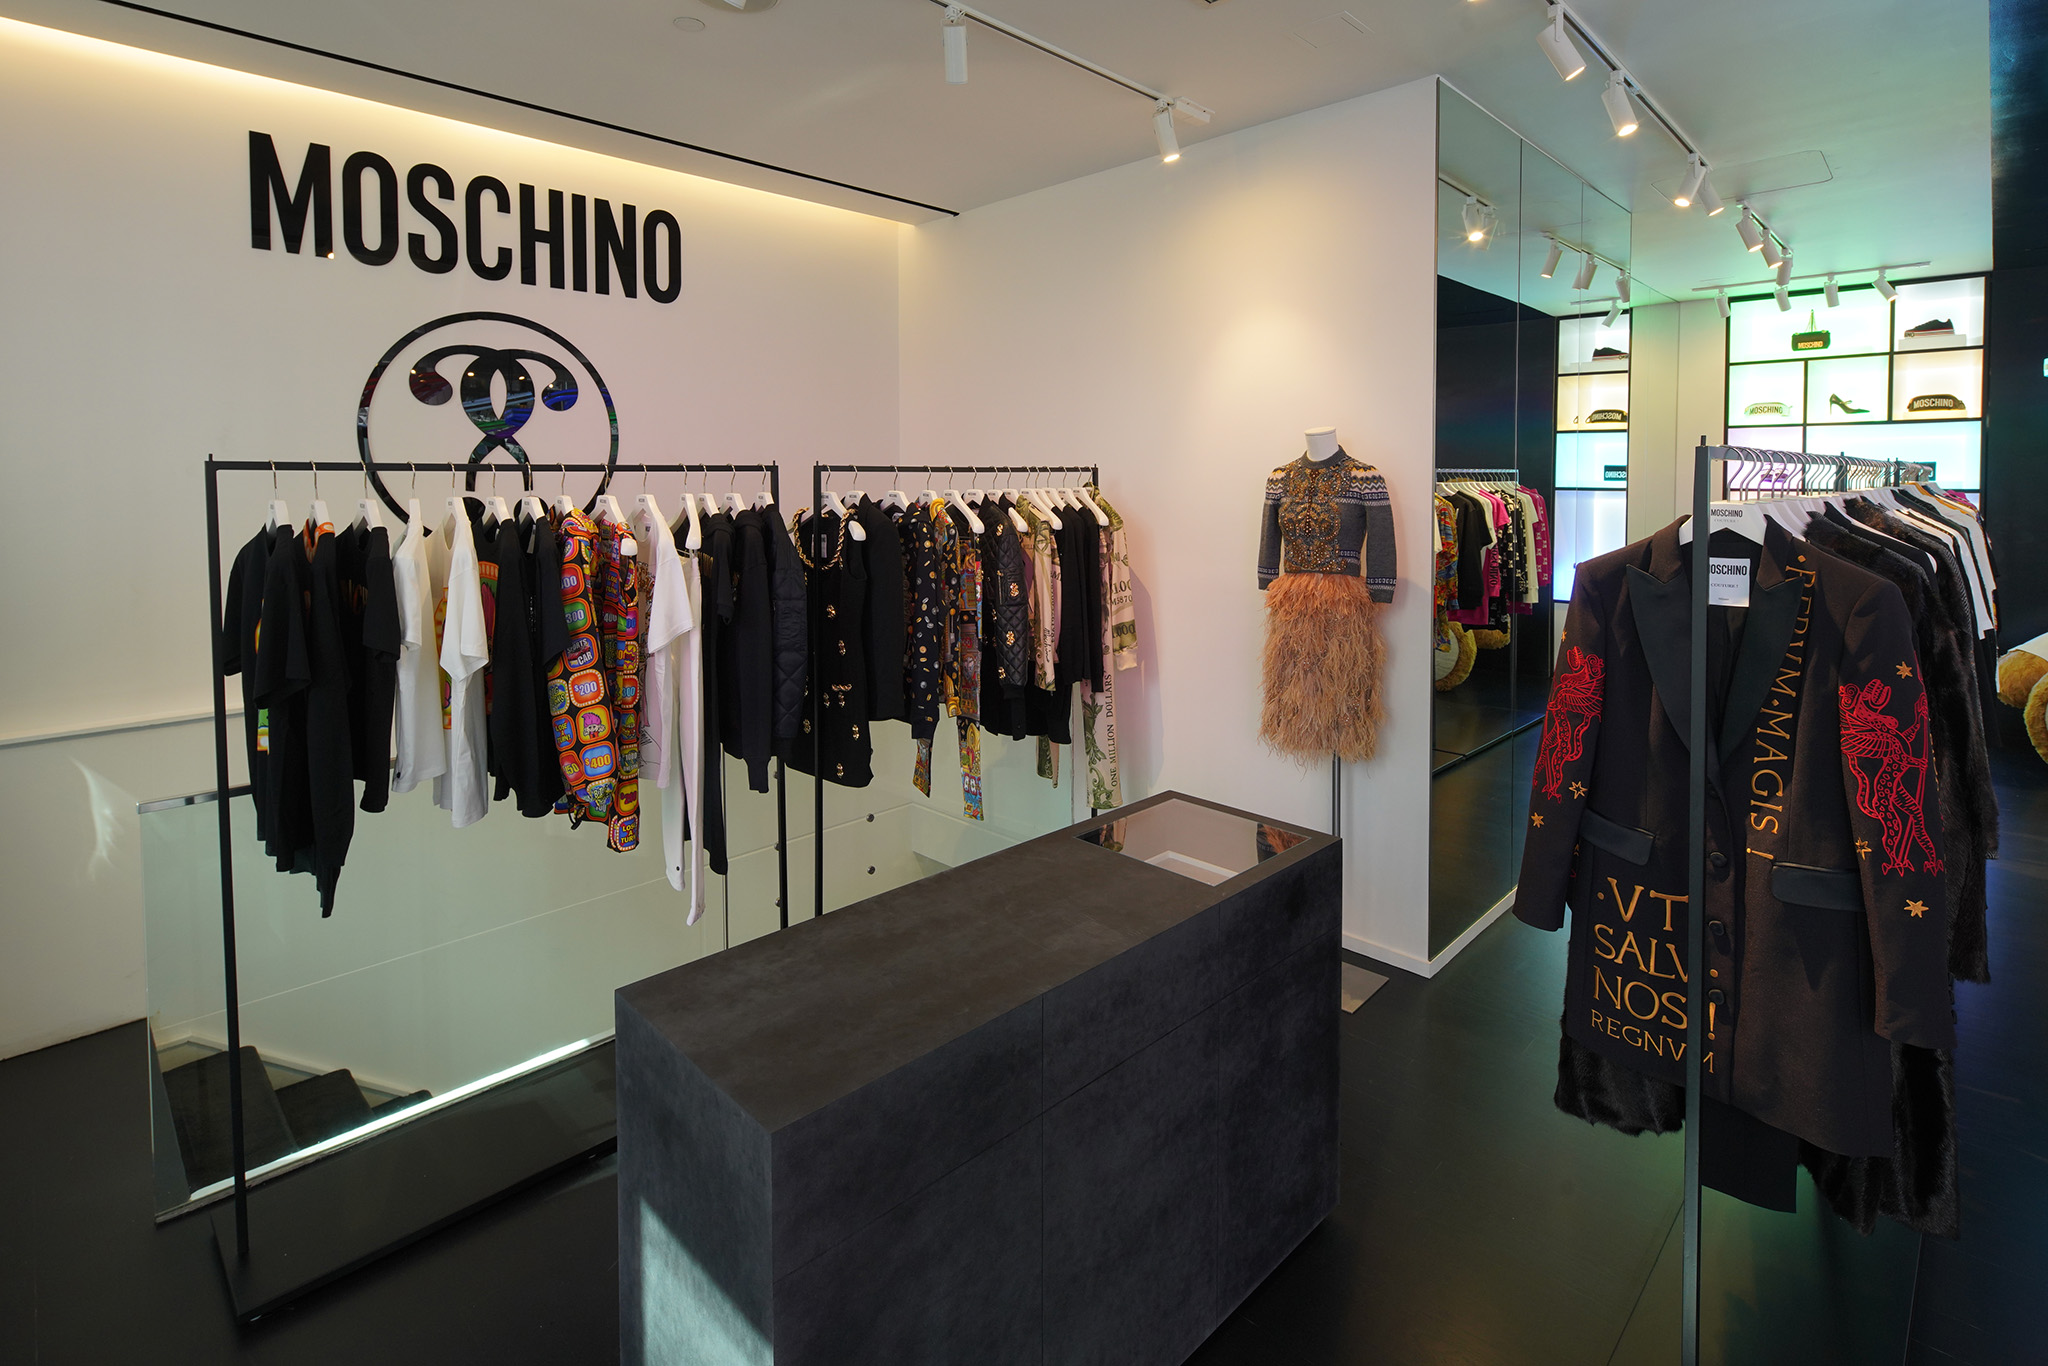 Inside the Moschino store.